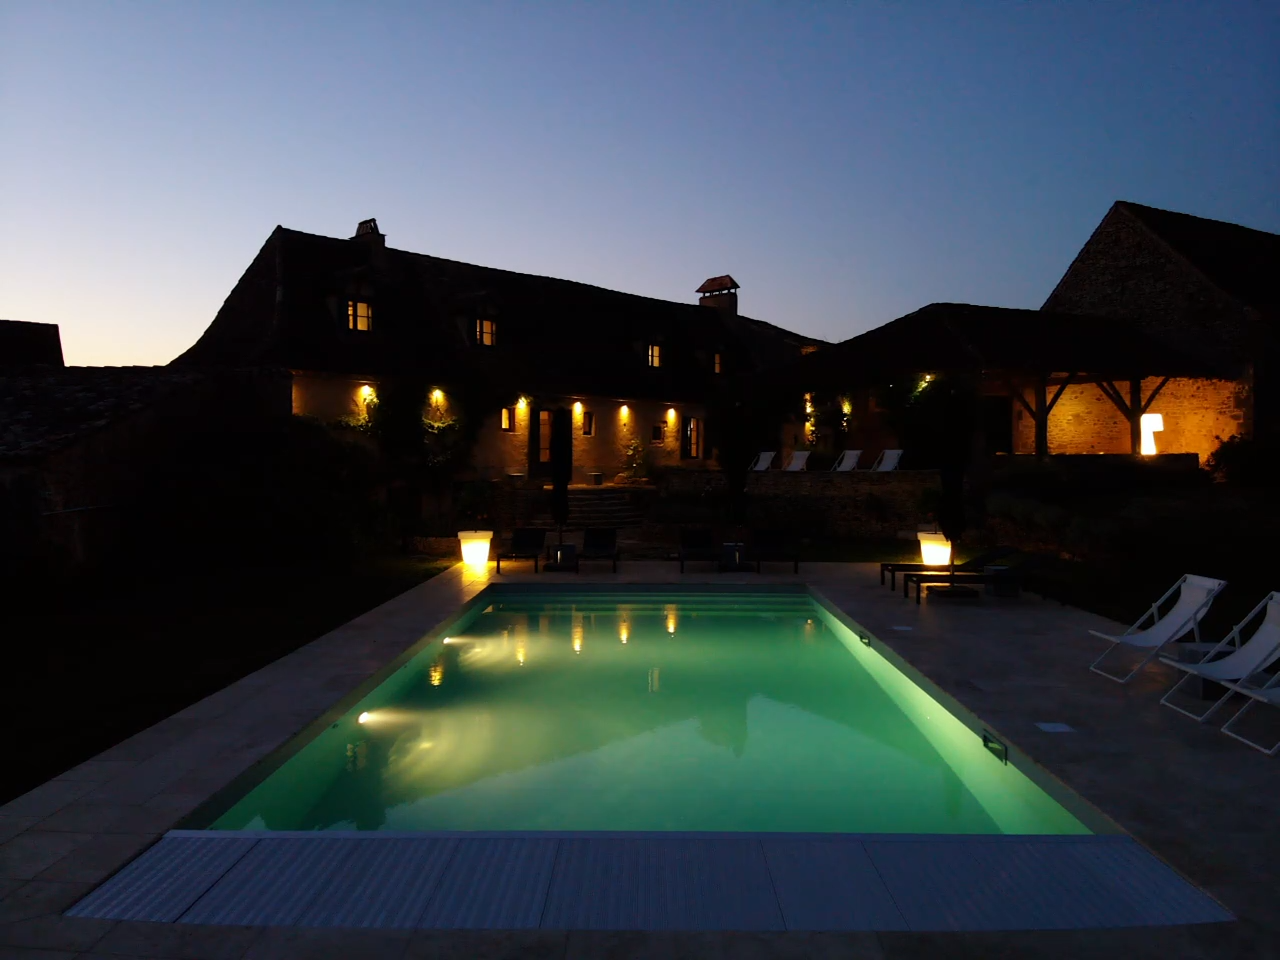 Luxury holiday house with private pool in the Dordogne lit at night